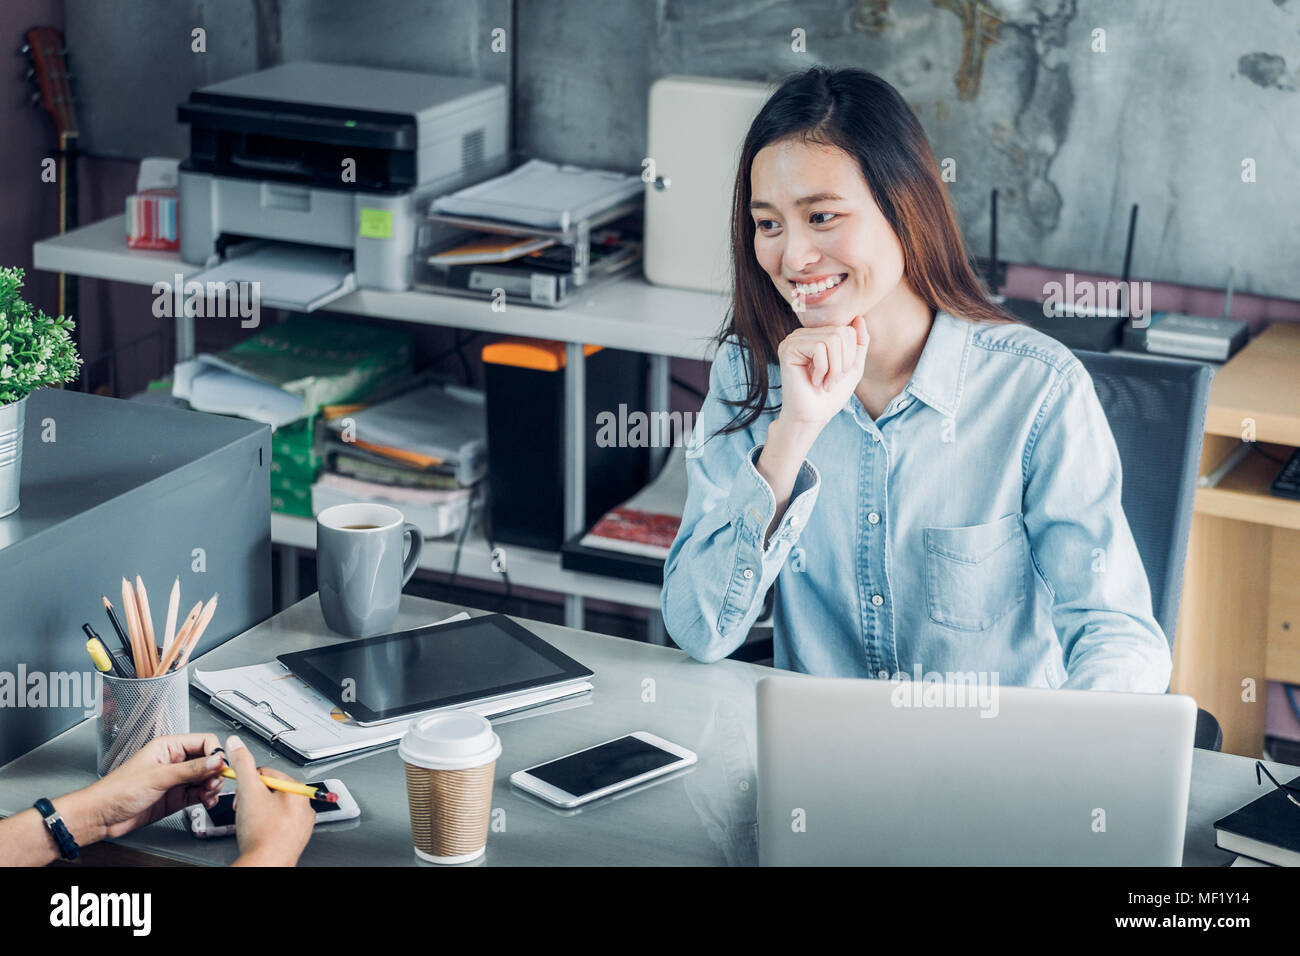 Two colleagues causal meeting at home office desk about business planing,business teamwork,top view of asian work mate consulting together - Stock Image